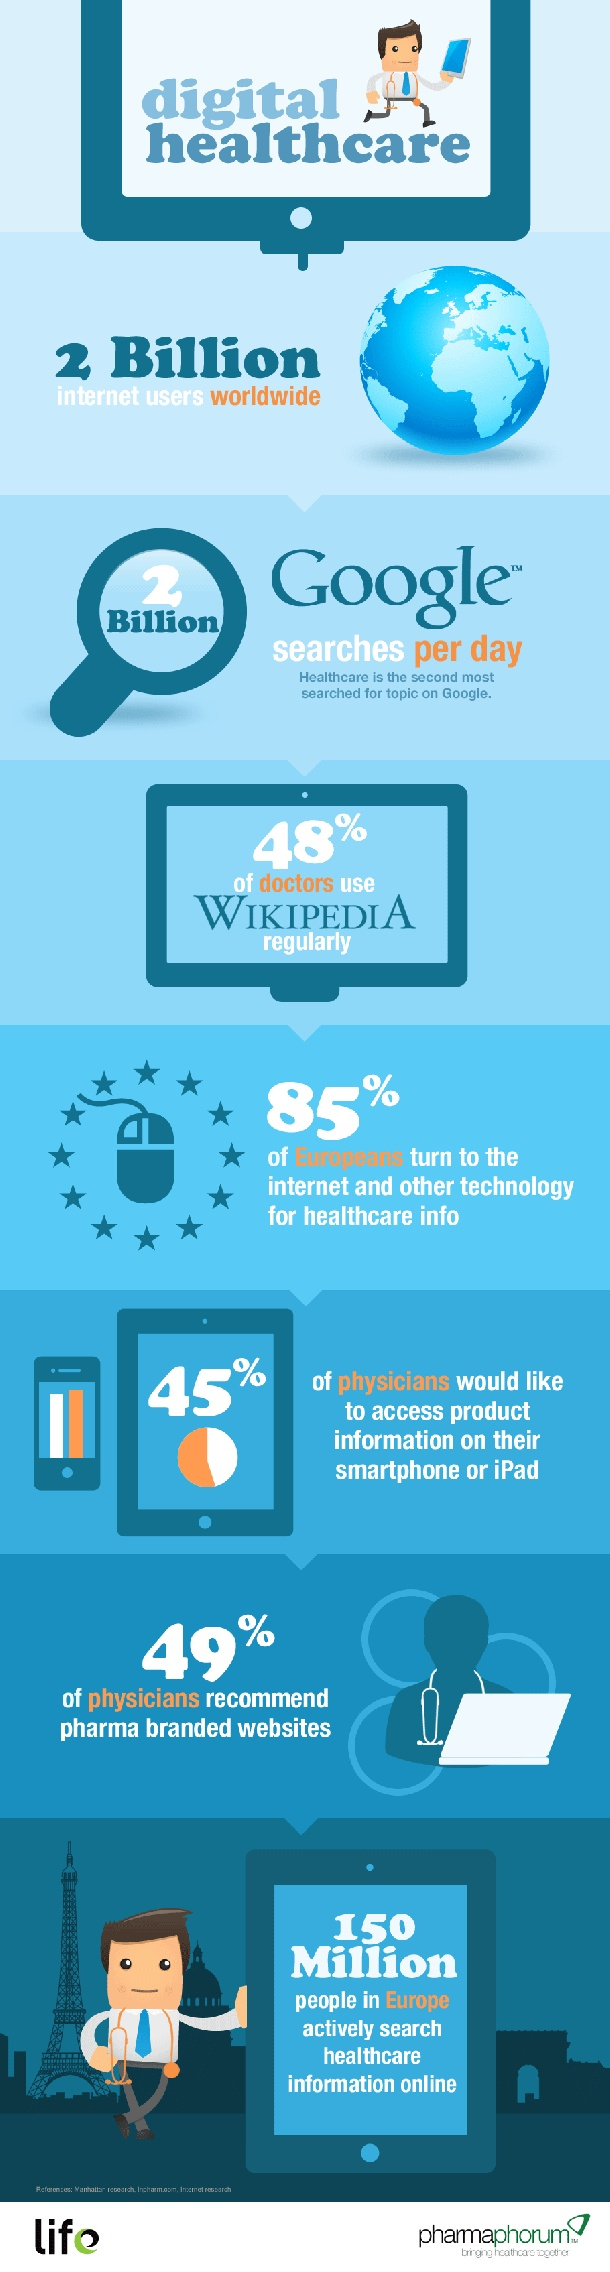 Digital Healthcare infographic